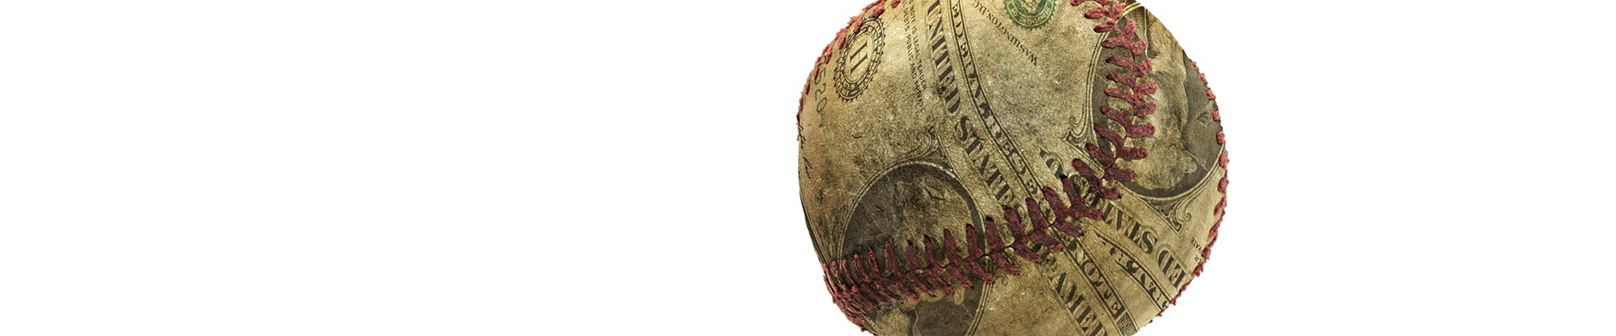 Inbound Marketing's Moneyballs